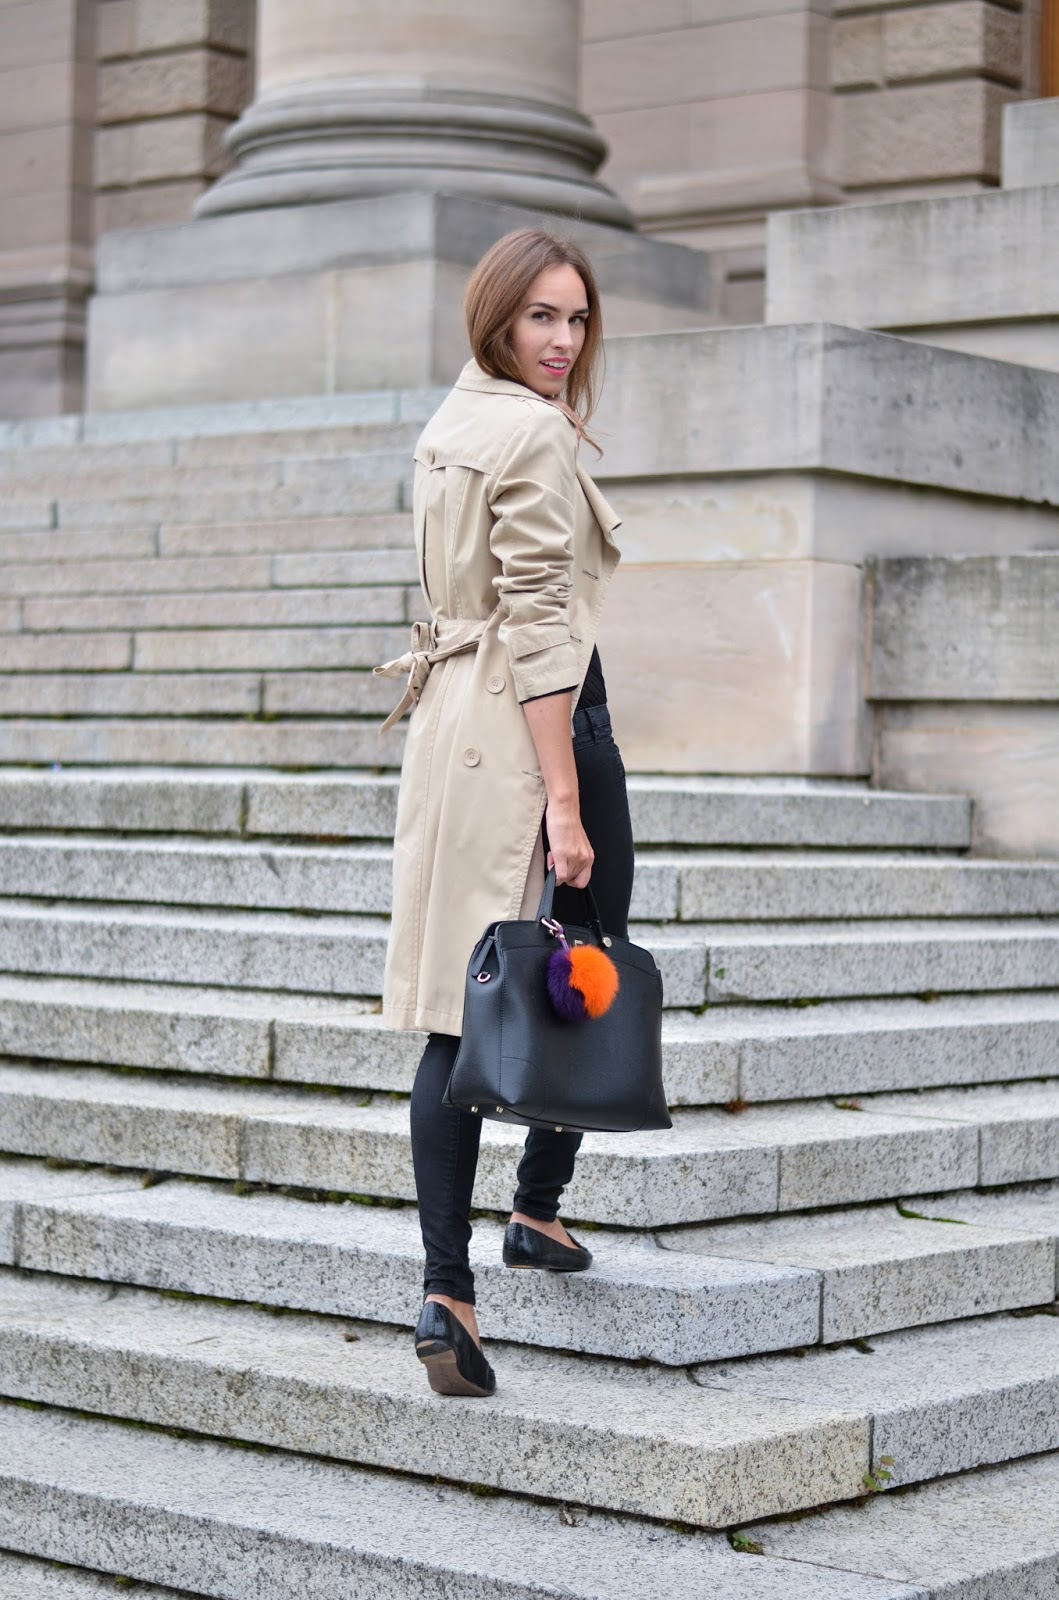 kristjaana mere beige trench coat black jeans outfit